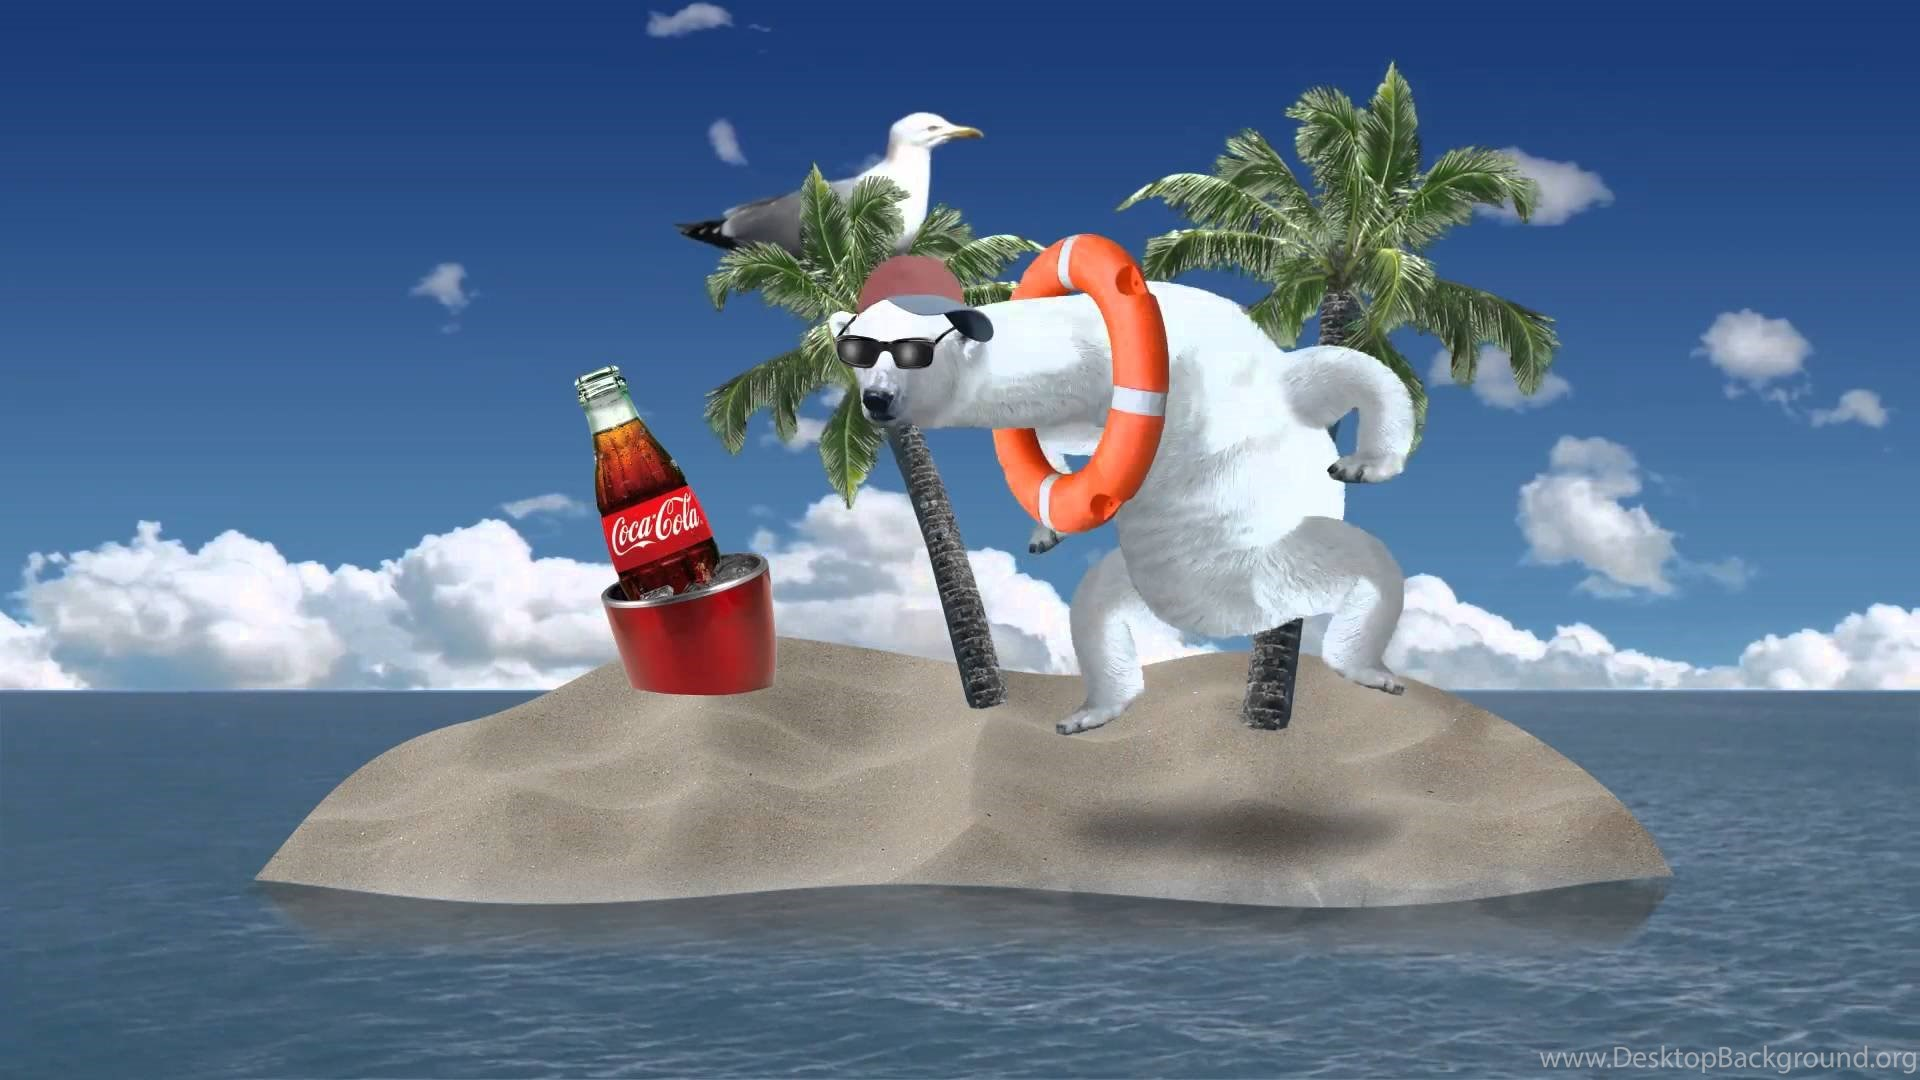 Polar Party An Animated Interactive Ad For Coca Cola By Cyriak Desktop Background